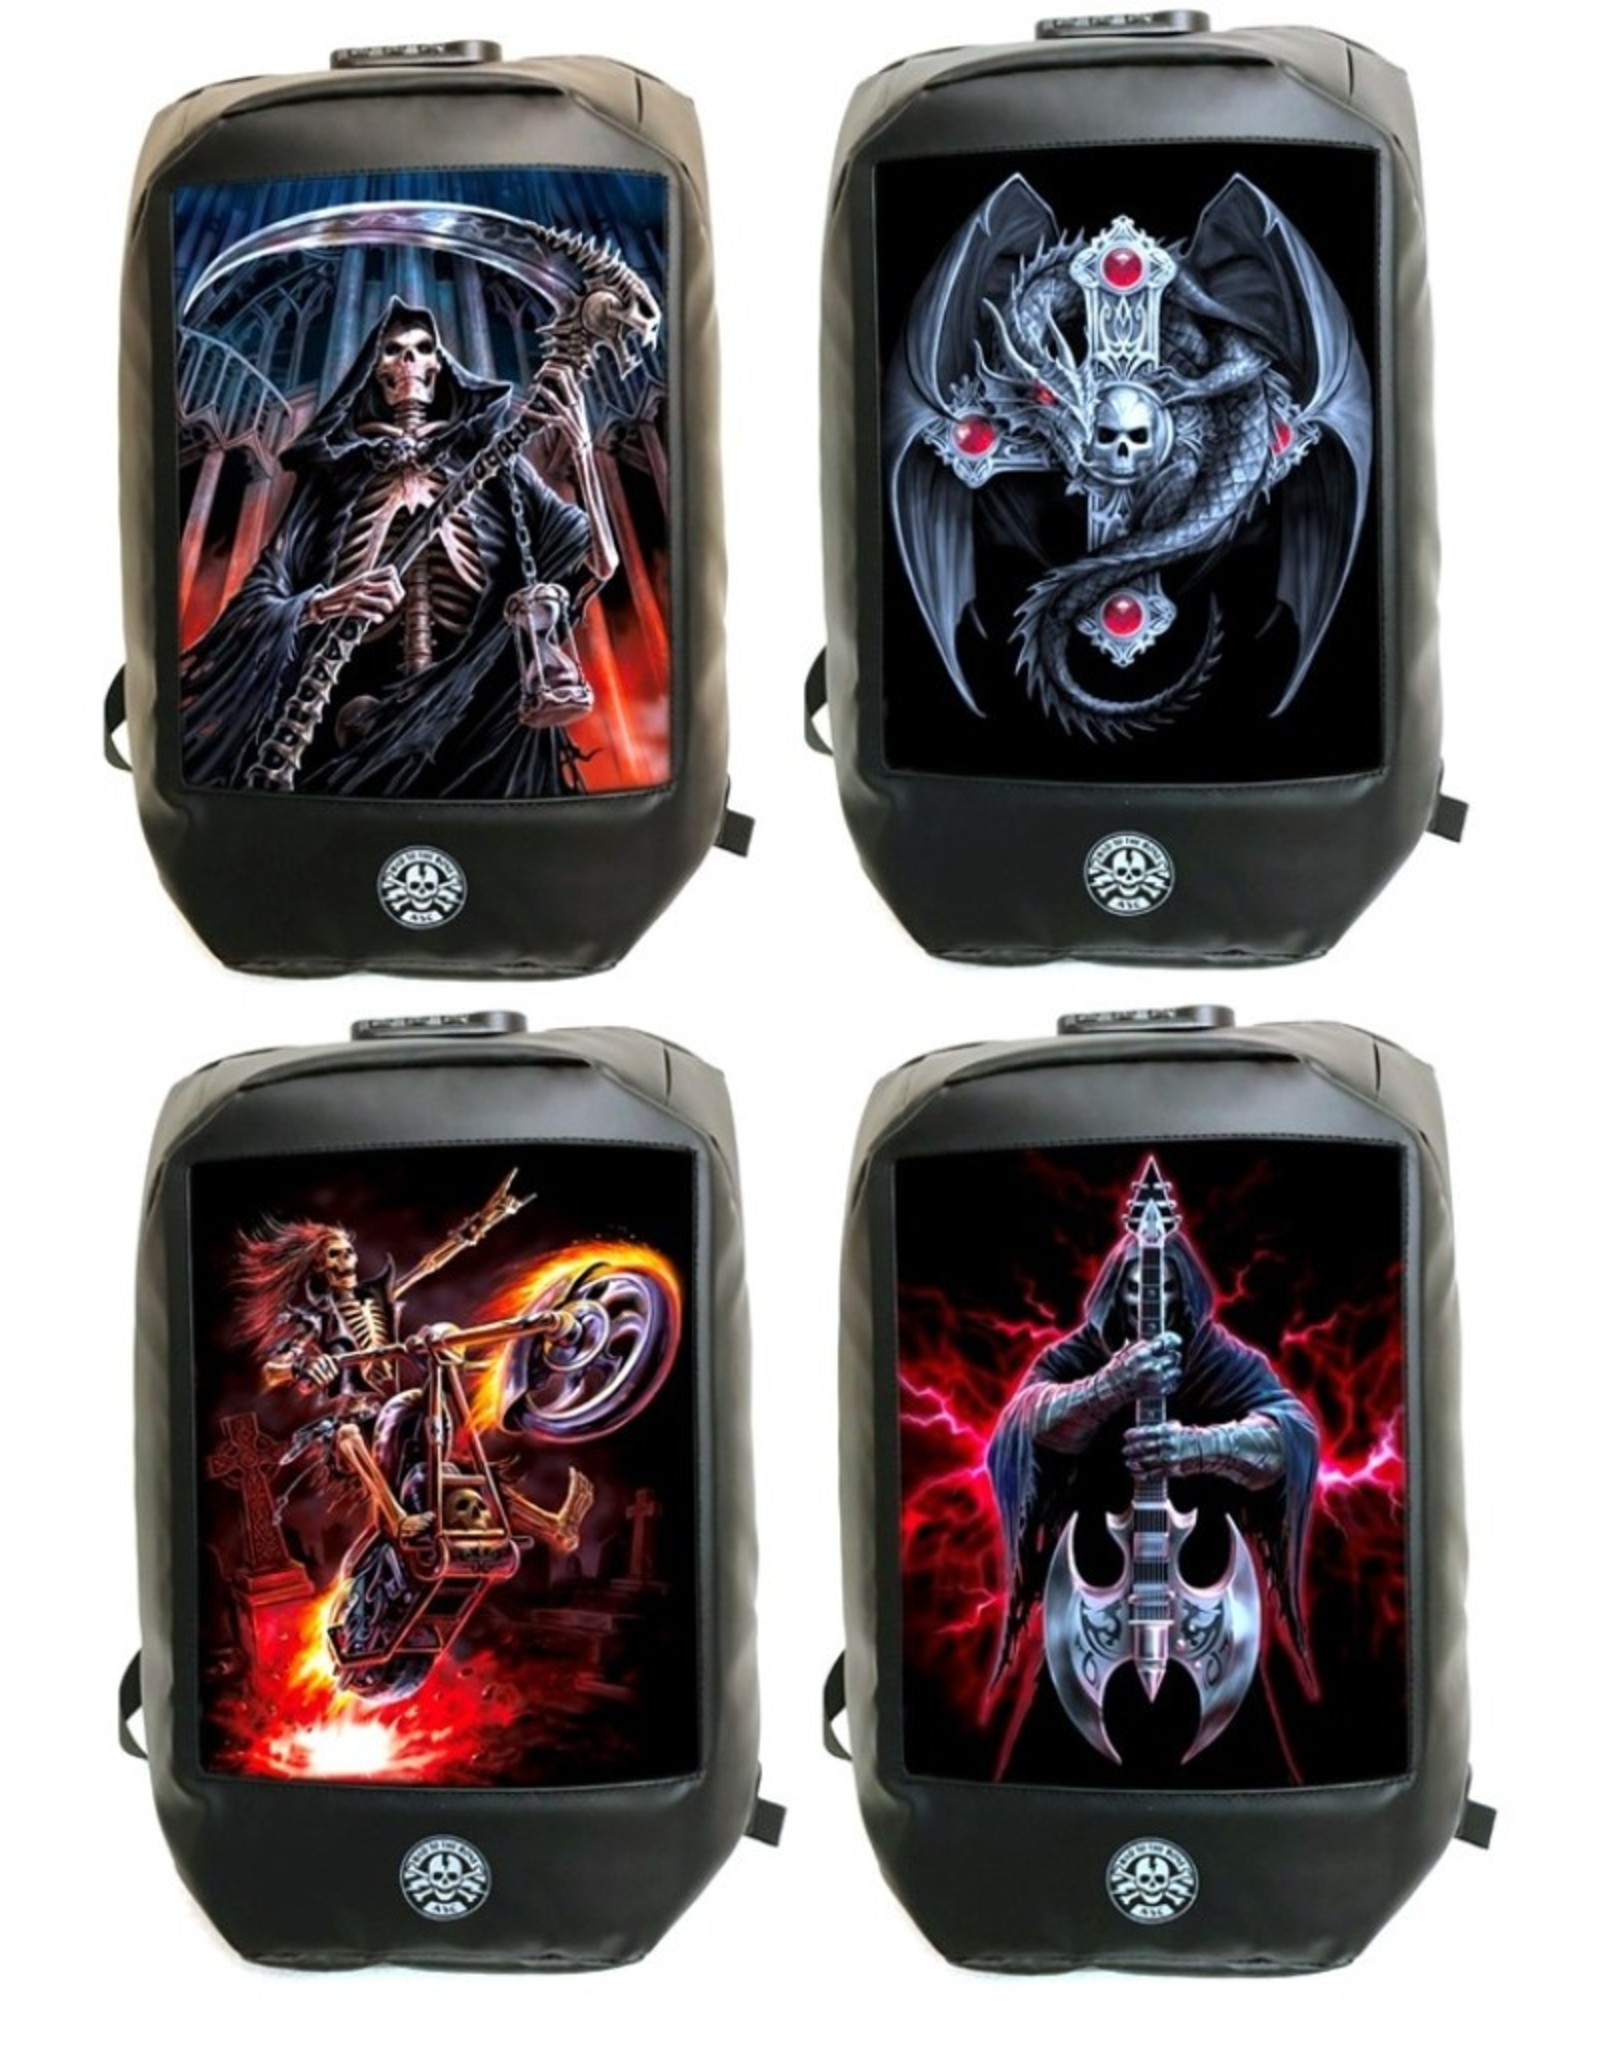 Anne Stokes Gothic bags Steampunk bags - Anne Stokes Bad to the Bone Final Verdict 3D Laptop backpack